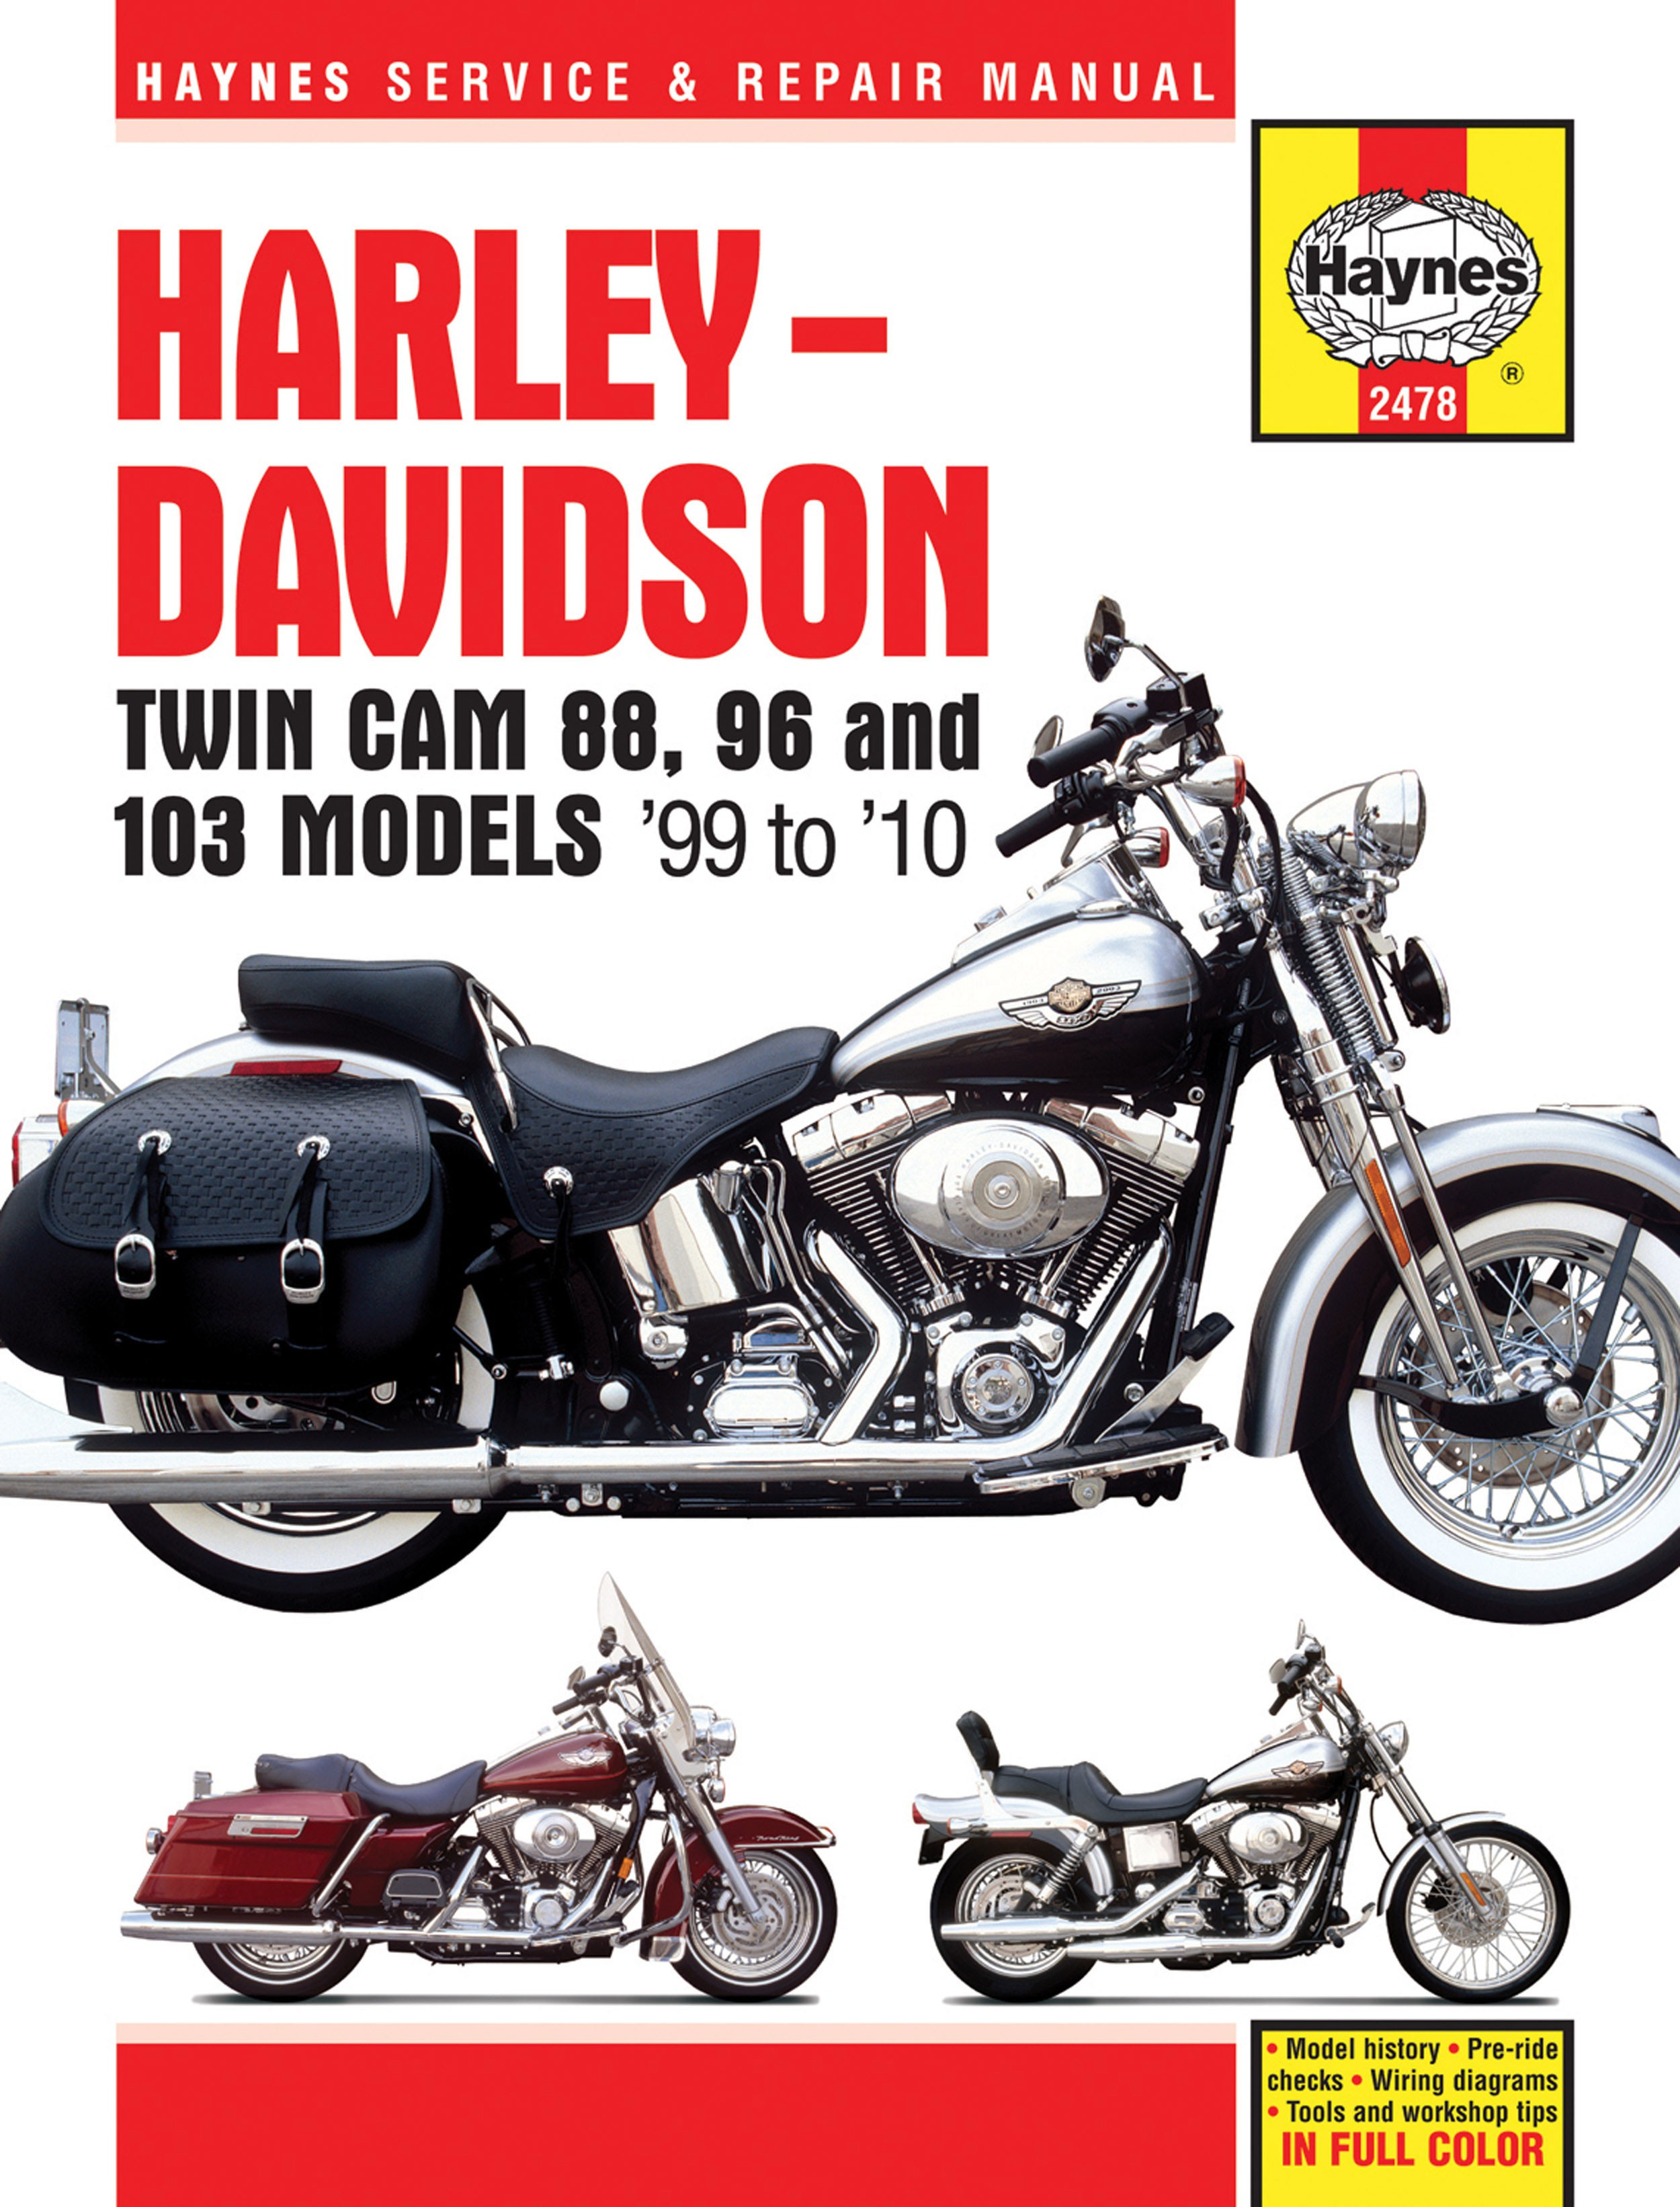 HAYNES Repair Manual - Harley-Davidson Twin Cam 88 Softail (2000-2010),  Dyna Glide (1999-2010), ...